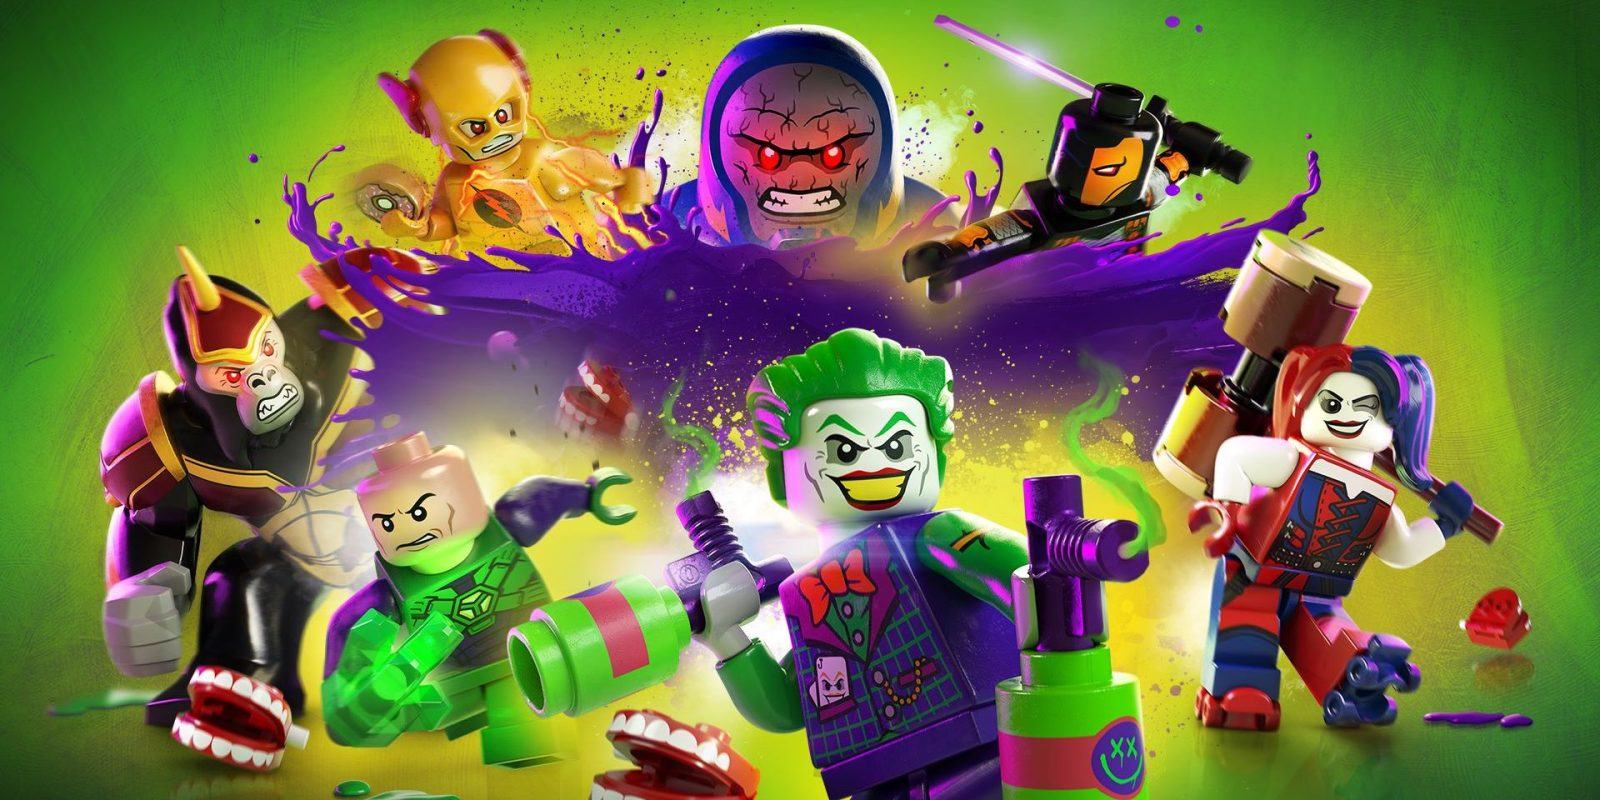 Today's Best Game Deals: LEGO DC Super-Villains $20, Division 2 $20, more